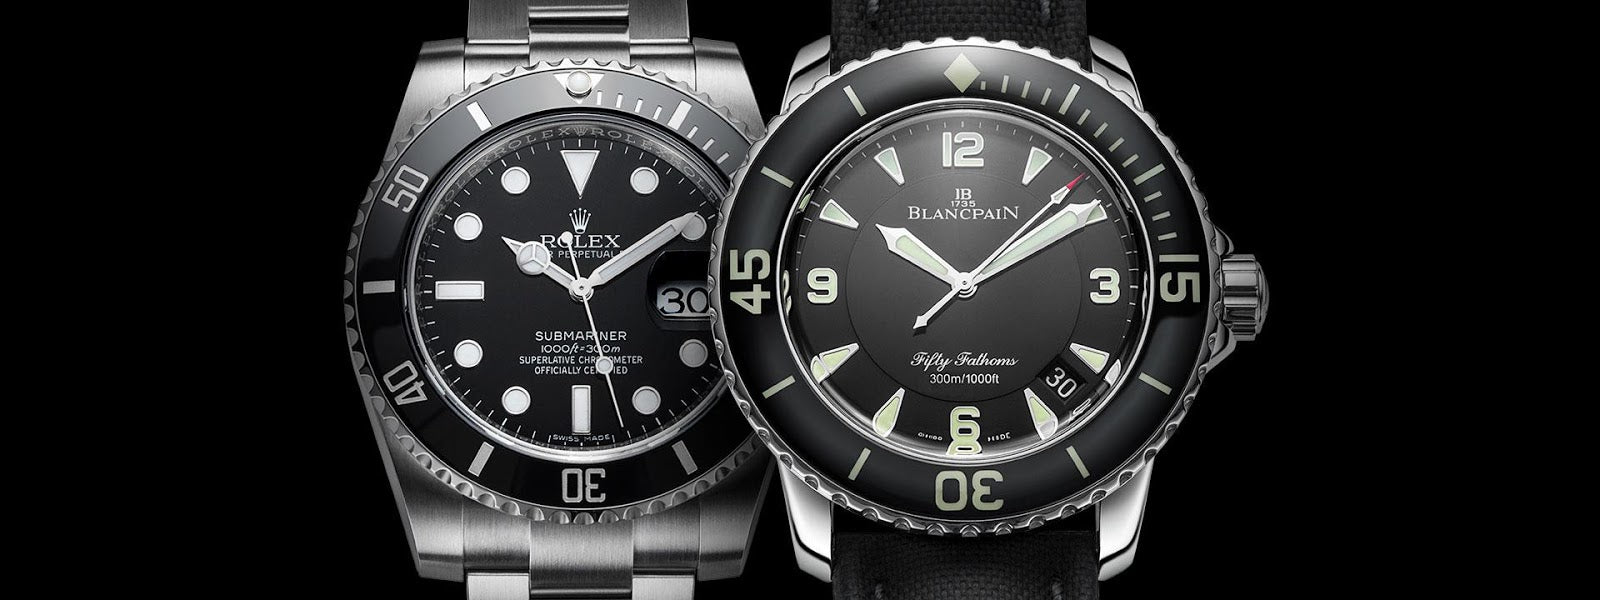 rolex and blancpain